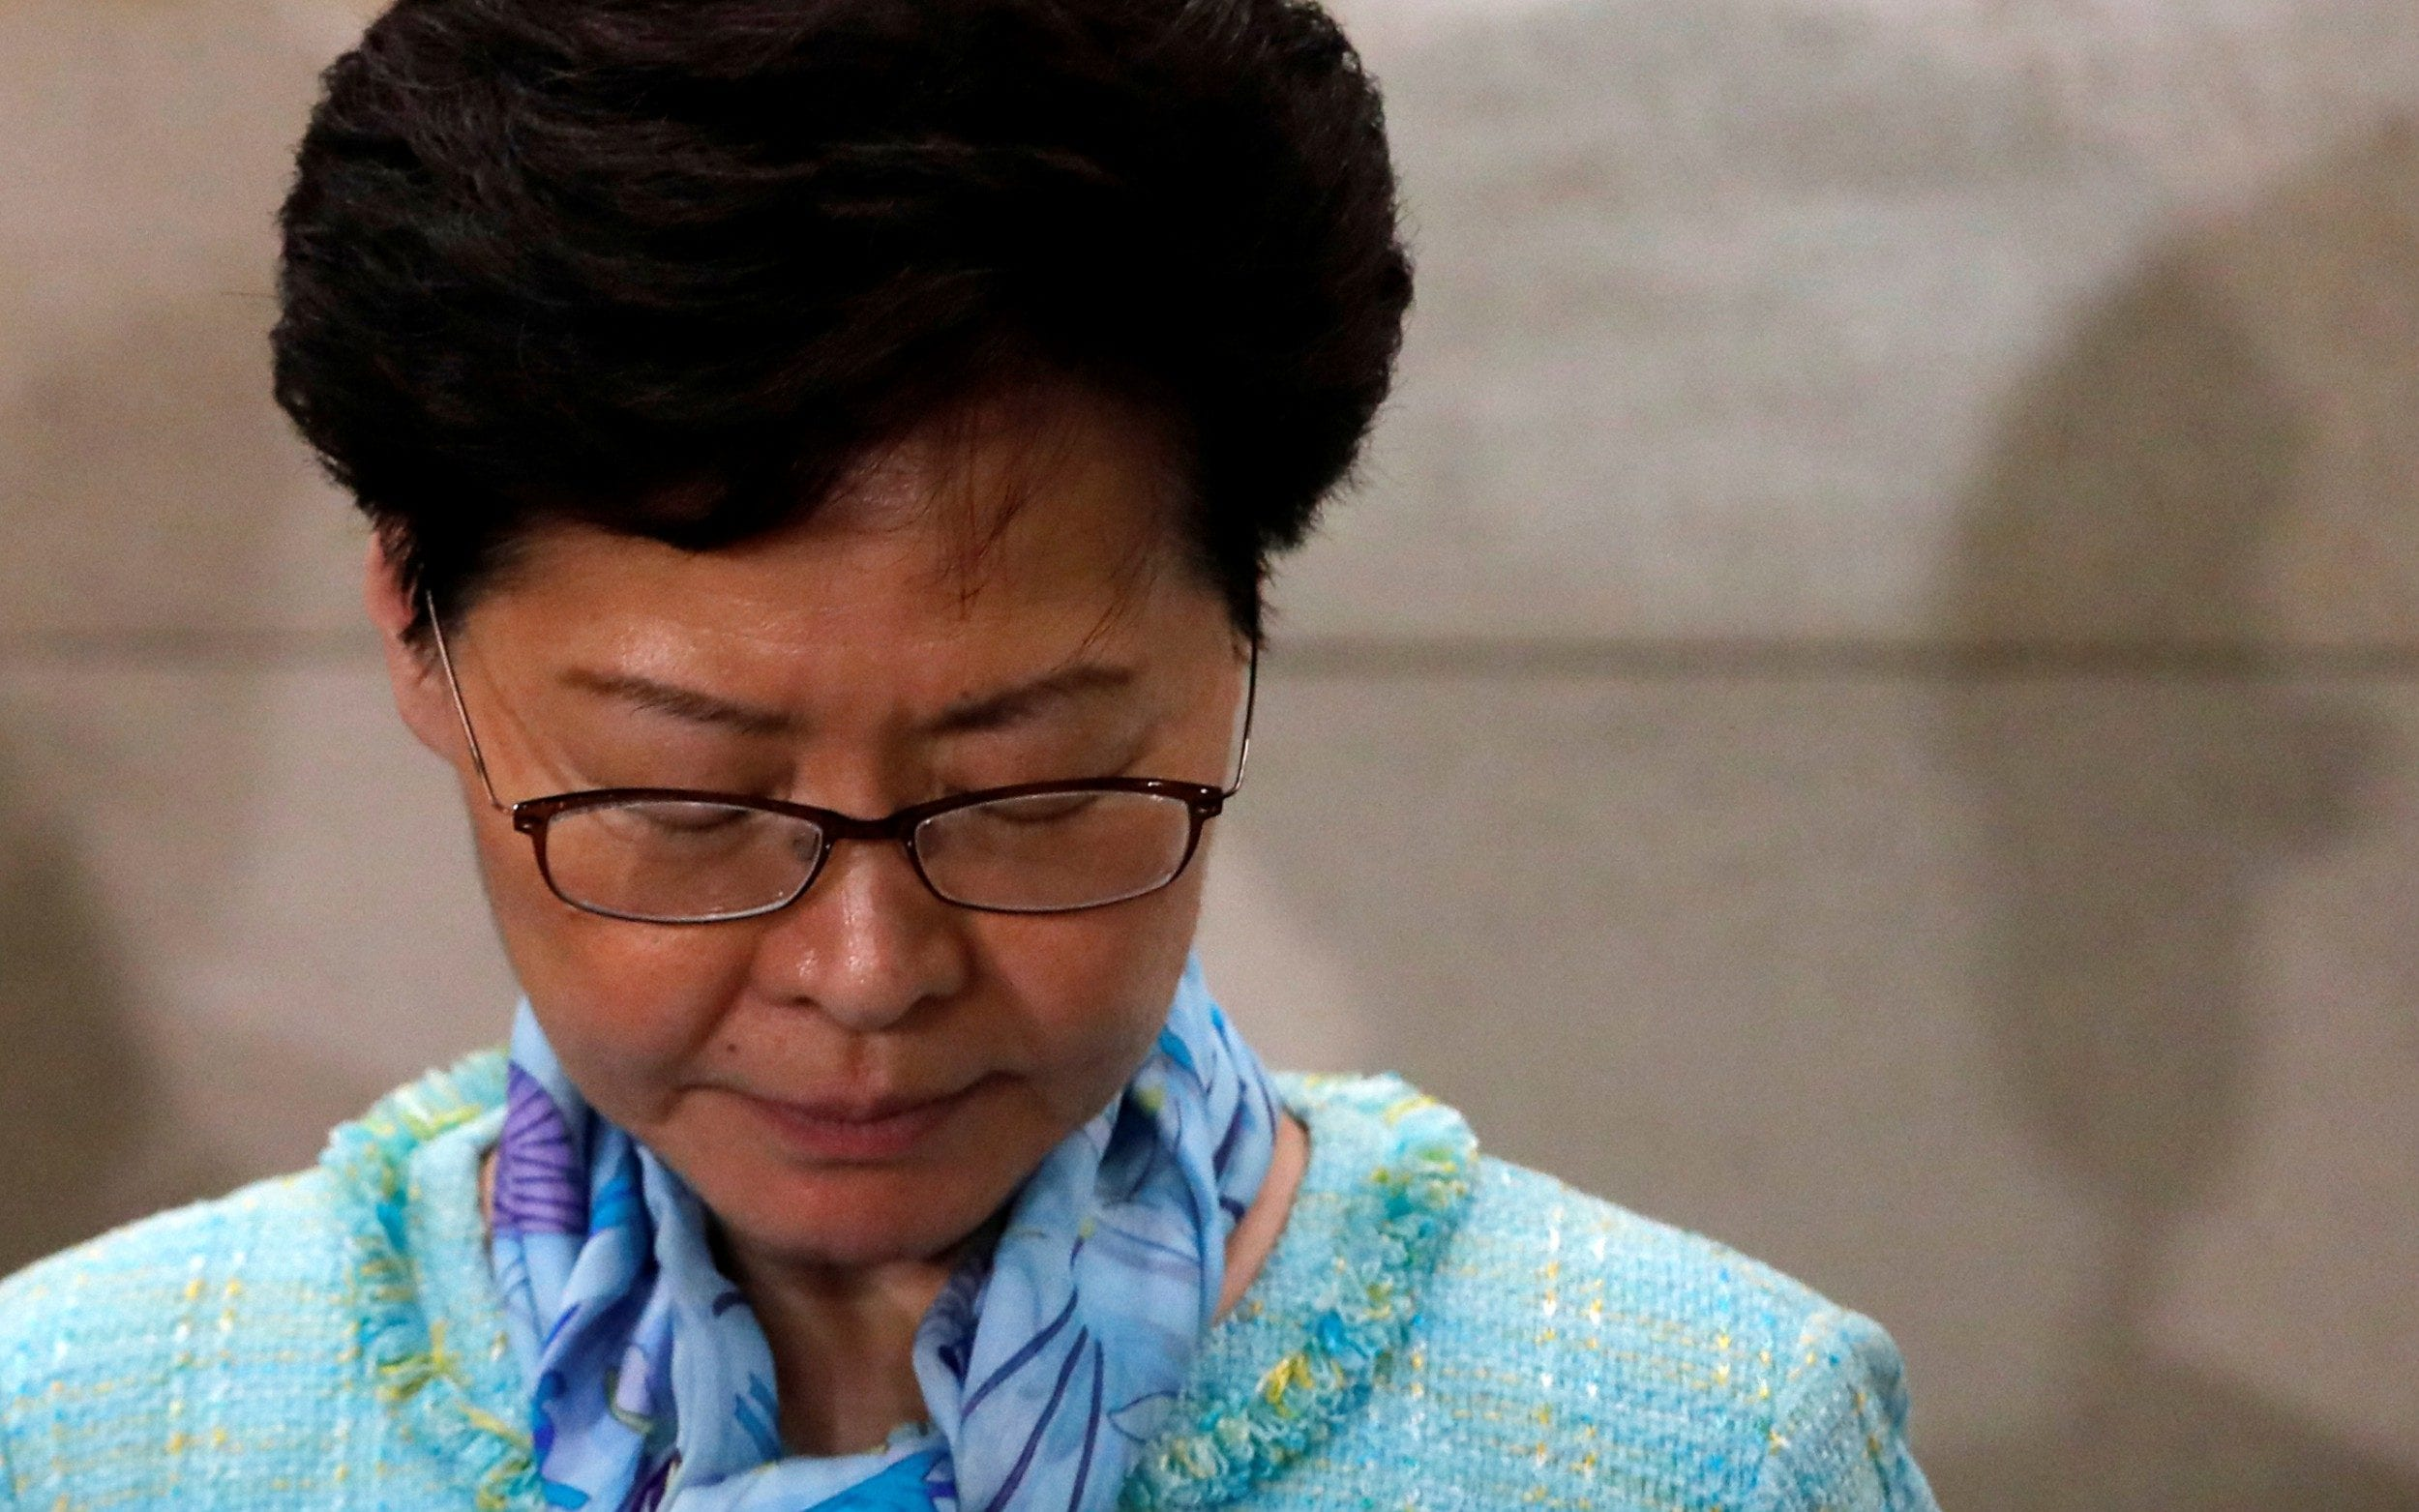 Hong Kong protests: Defiant Carrie Lam condemns storming of parliament and vows to take action